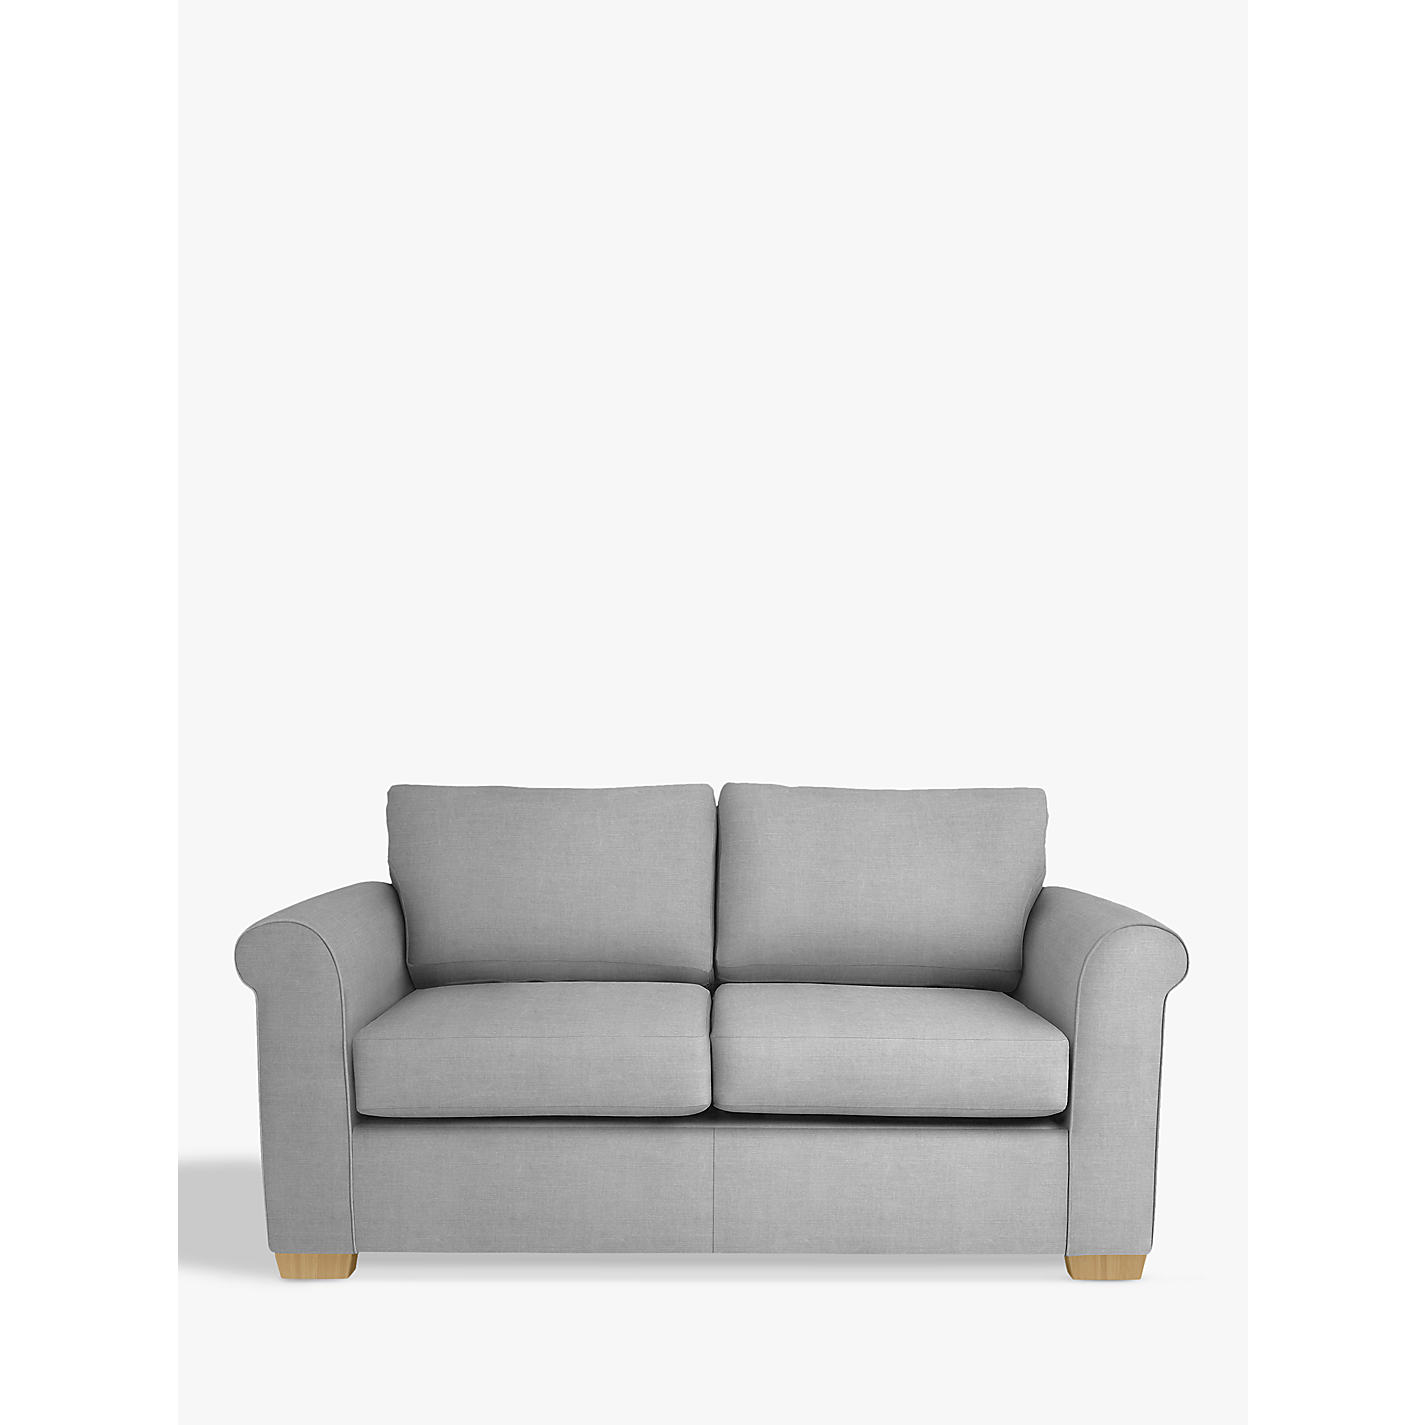 Buy John Lewis Malone 2 Seater Small Sofa Bed With Pocket Sprung  ~ Where Can I Buy A Mattress For A Sofa Bed